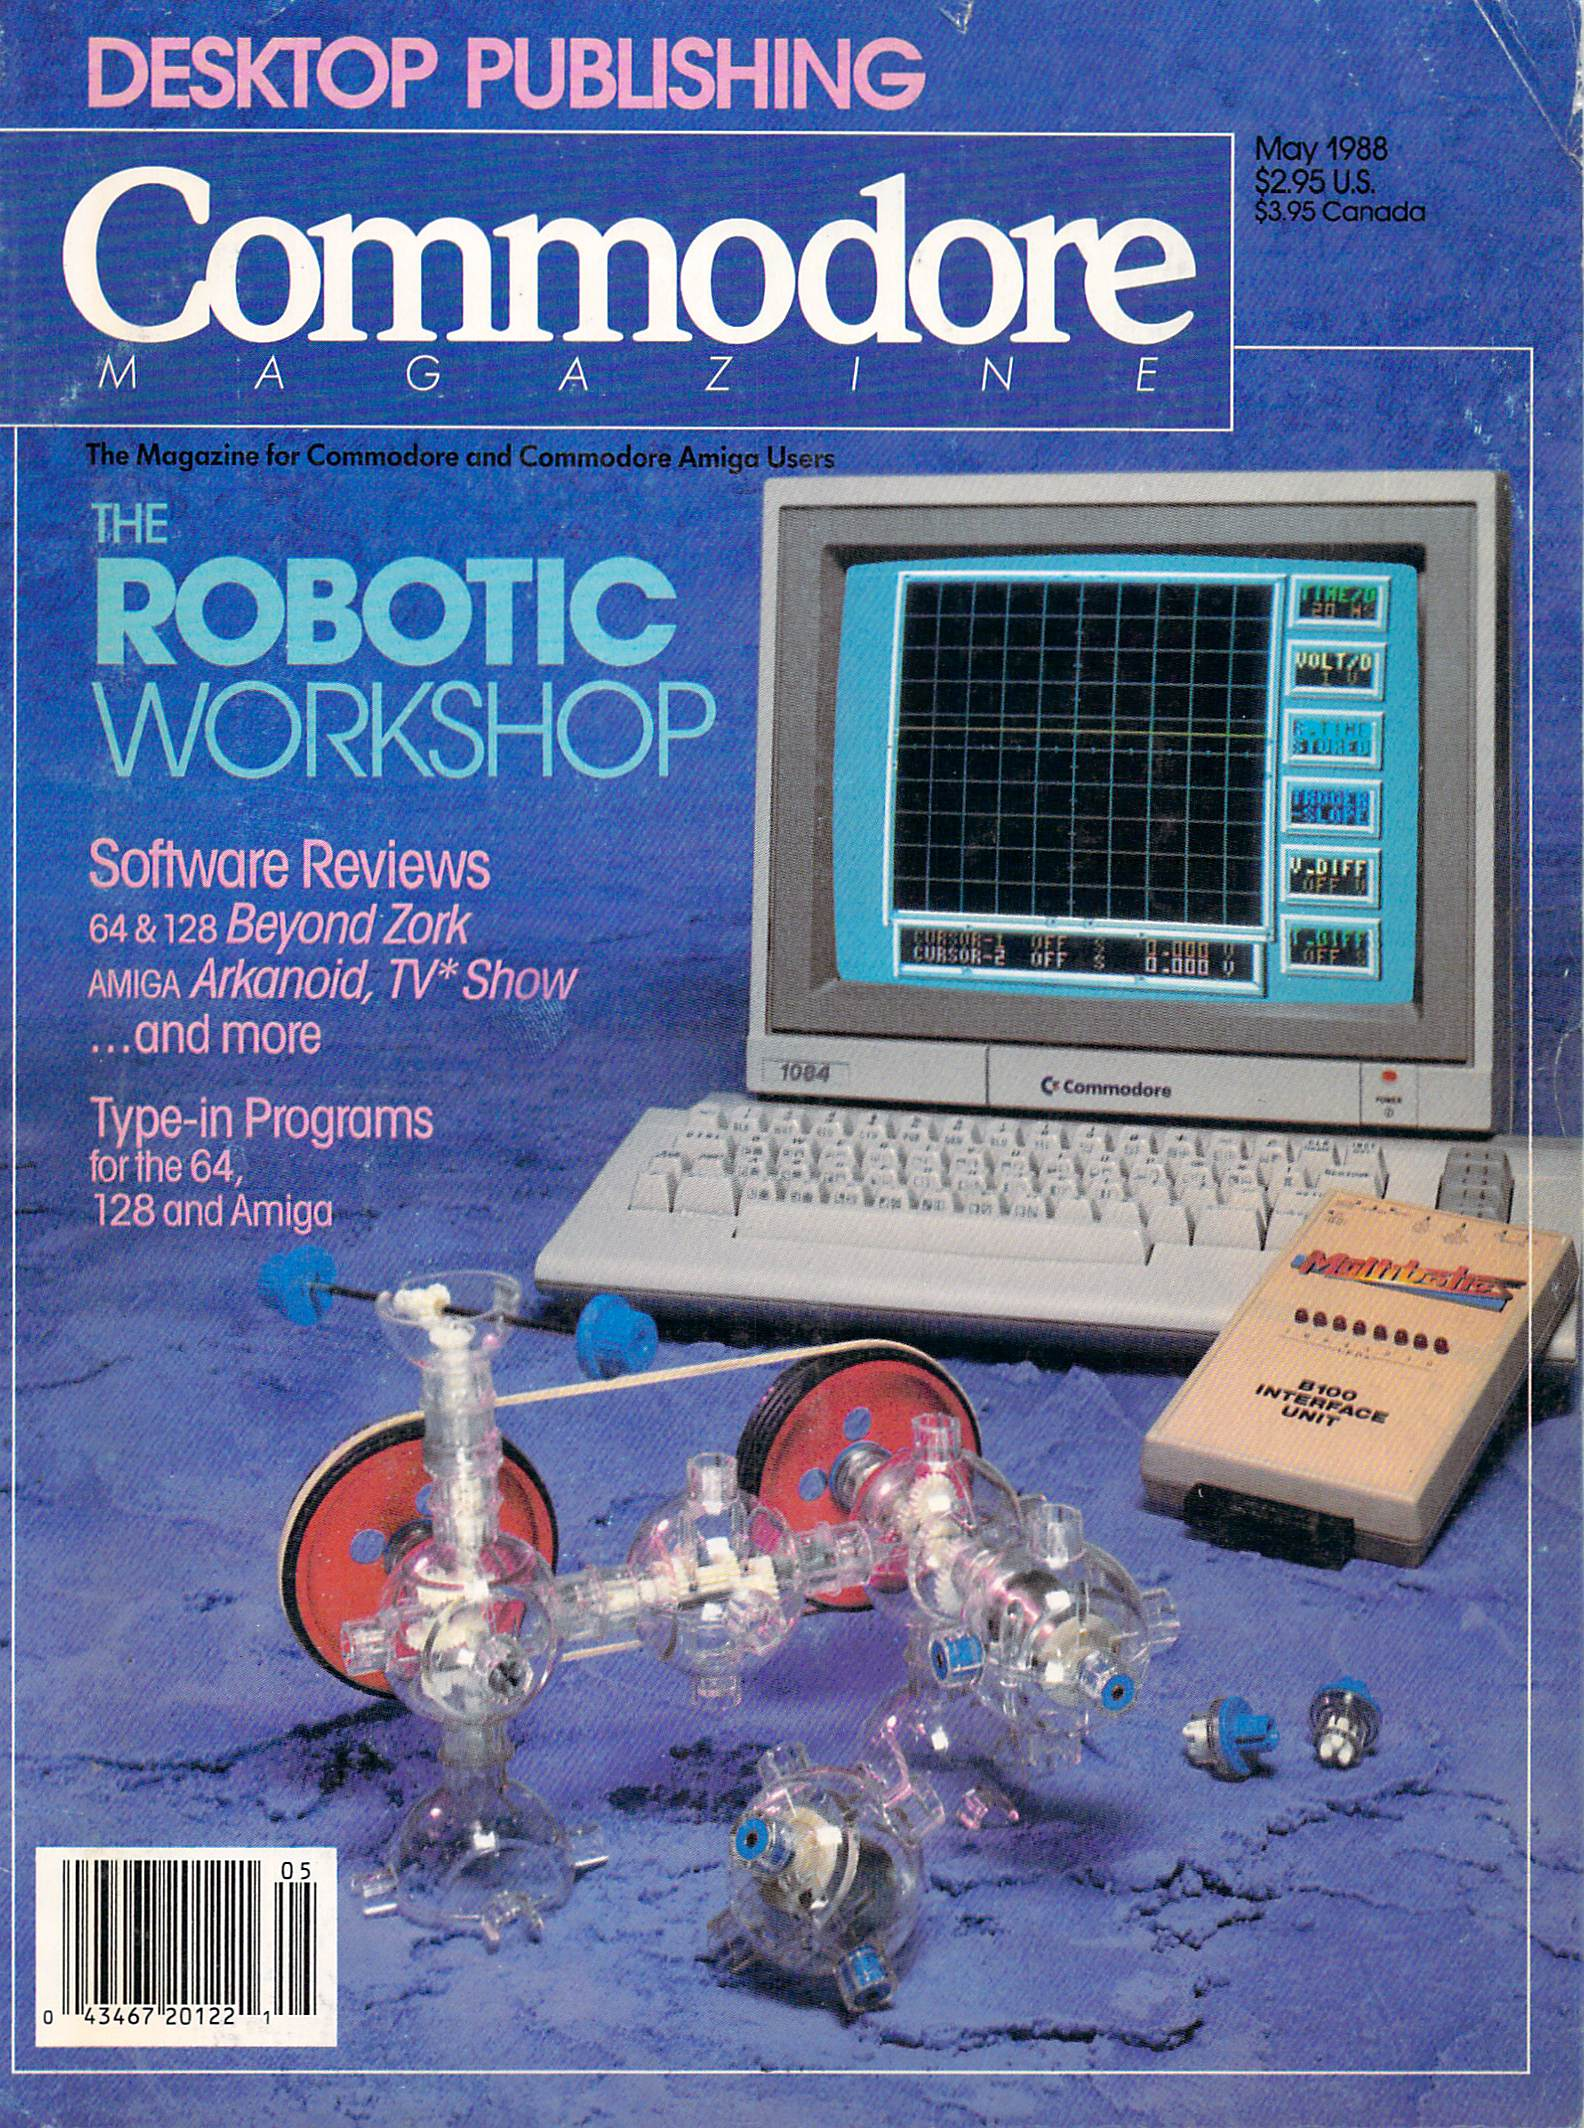 Commodore_Magazine_Vol-09-N05_1988_May-001